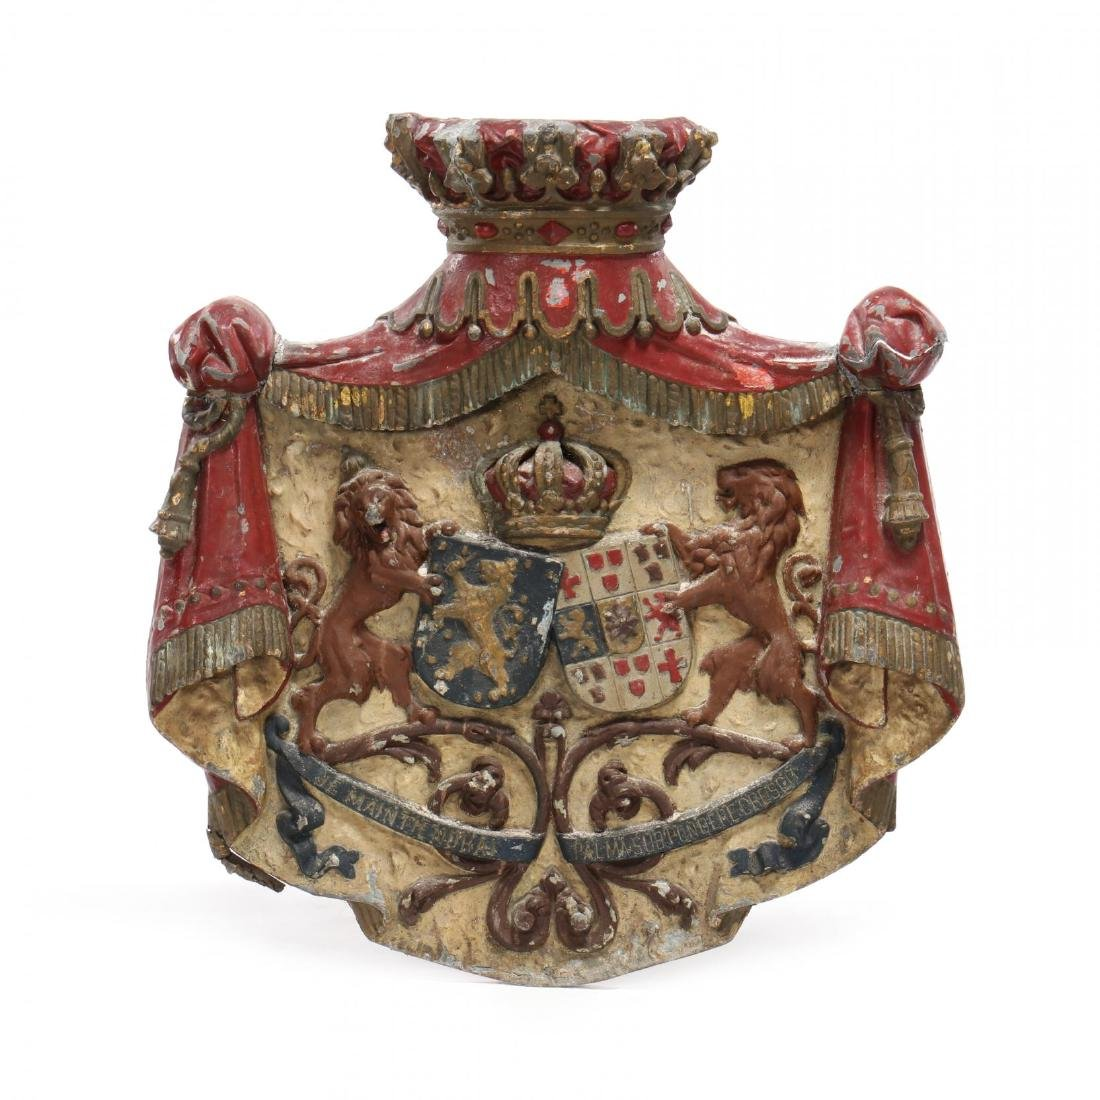 The Personal Coat-of-Arms for Queen Emma of the